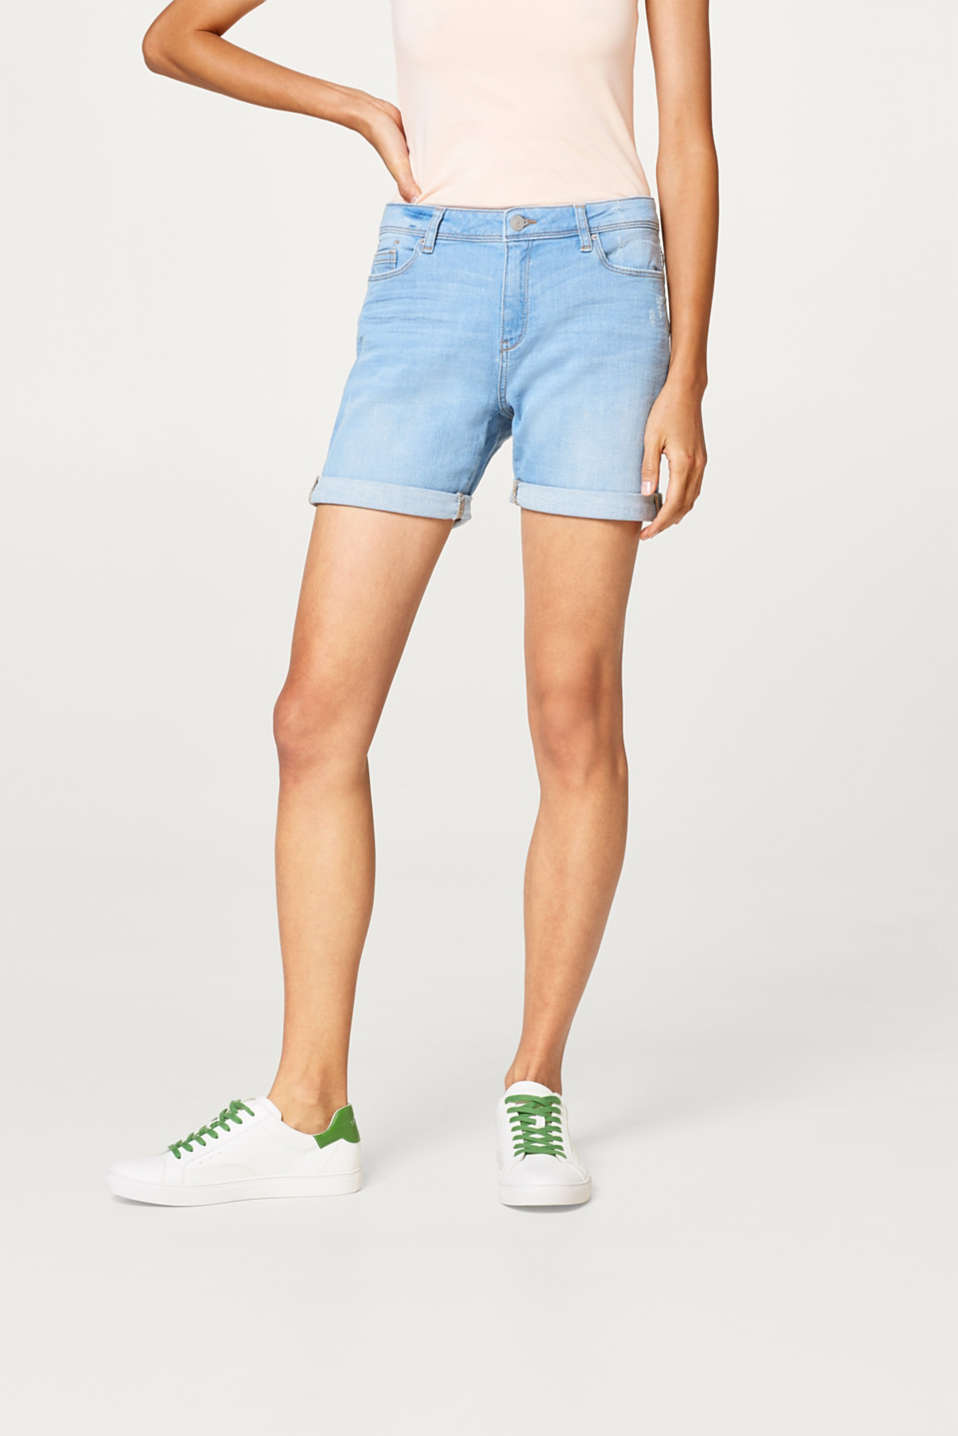 Esprit - Stretch denim shorts with a vintage finish